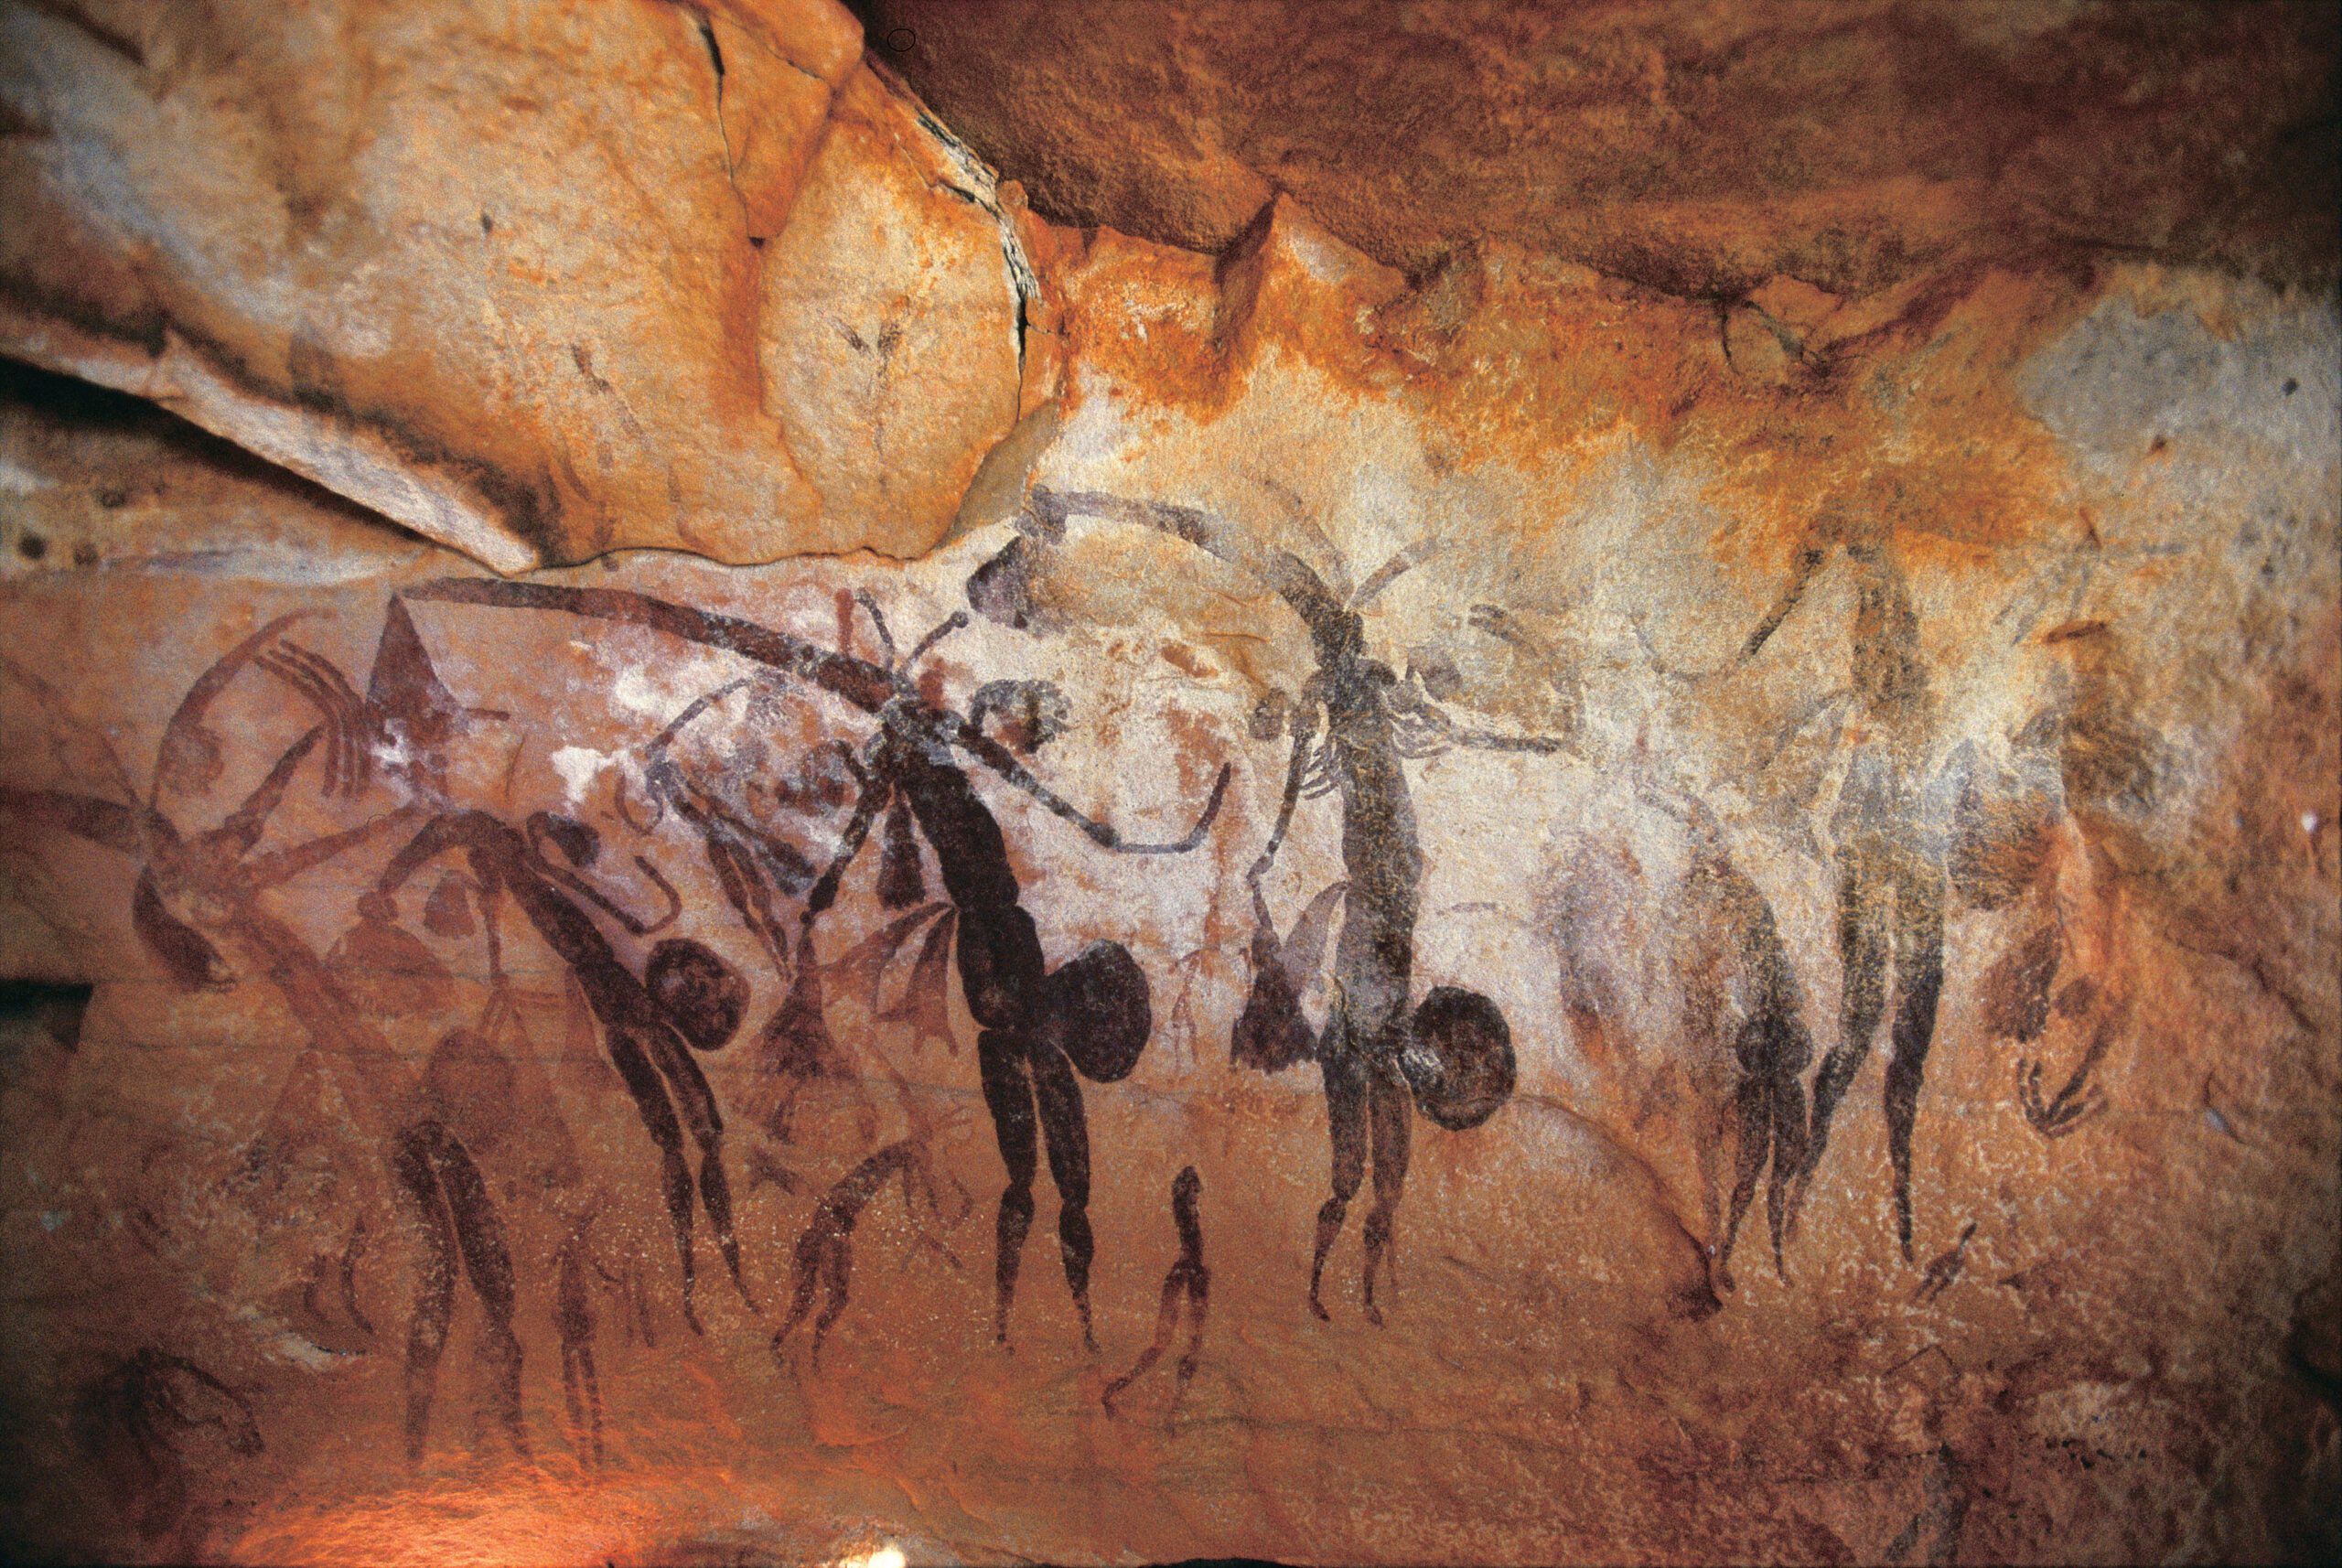 YOTSPACE superyacht voyages - Kimberley voyages - Gwion Gwion Aboriginal rock art